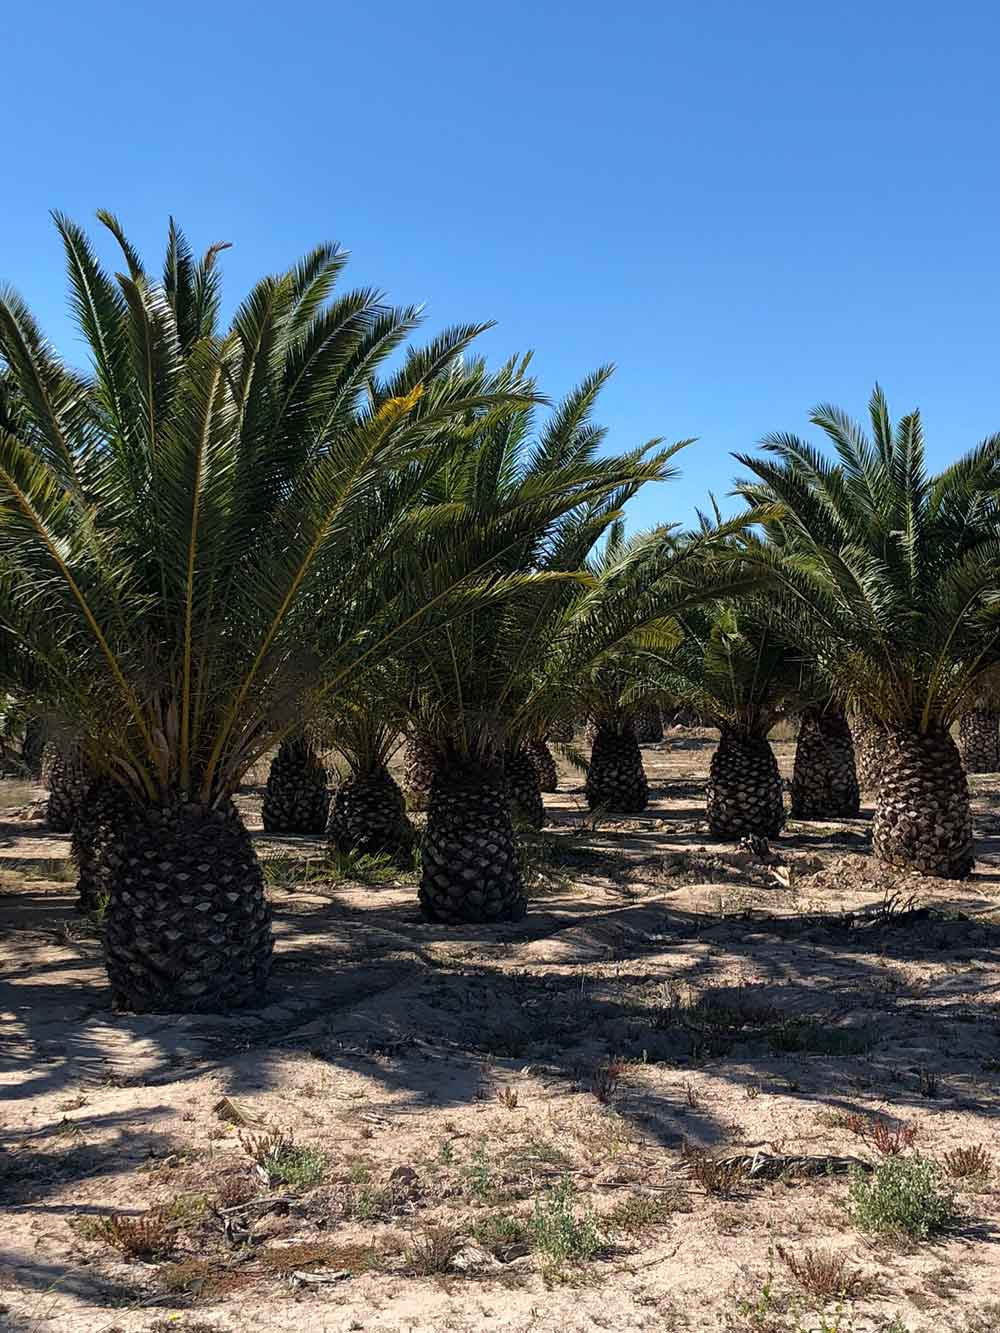 Palm trees are also cultivated in the area. They're used in landscape gardening and on film sets, and some are even exported as far as the Middle East.